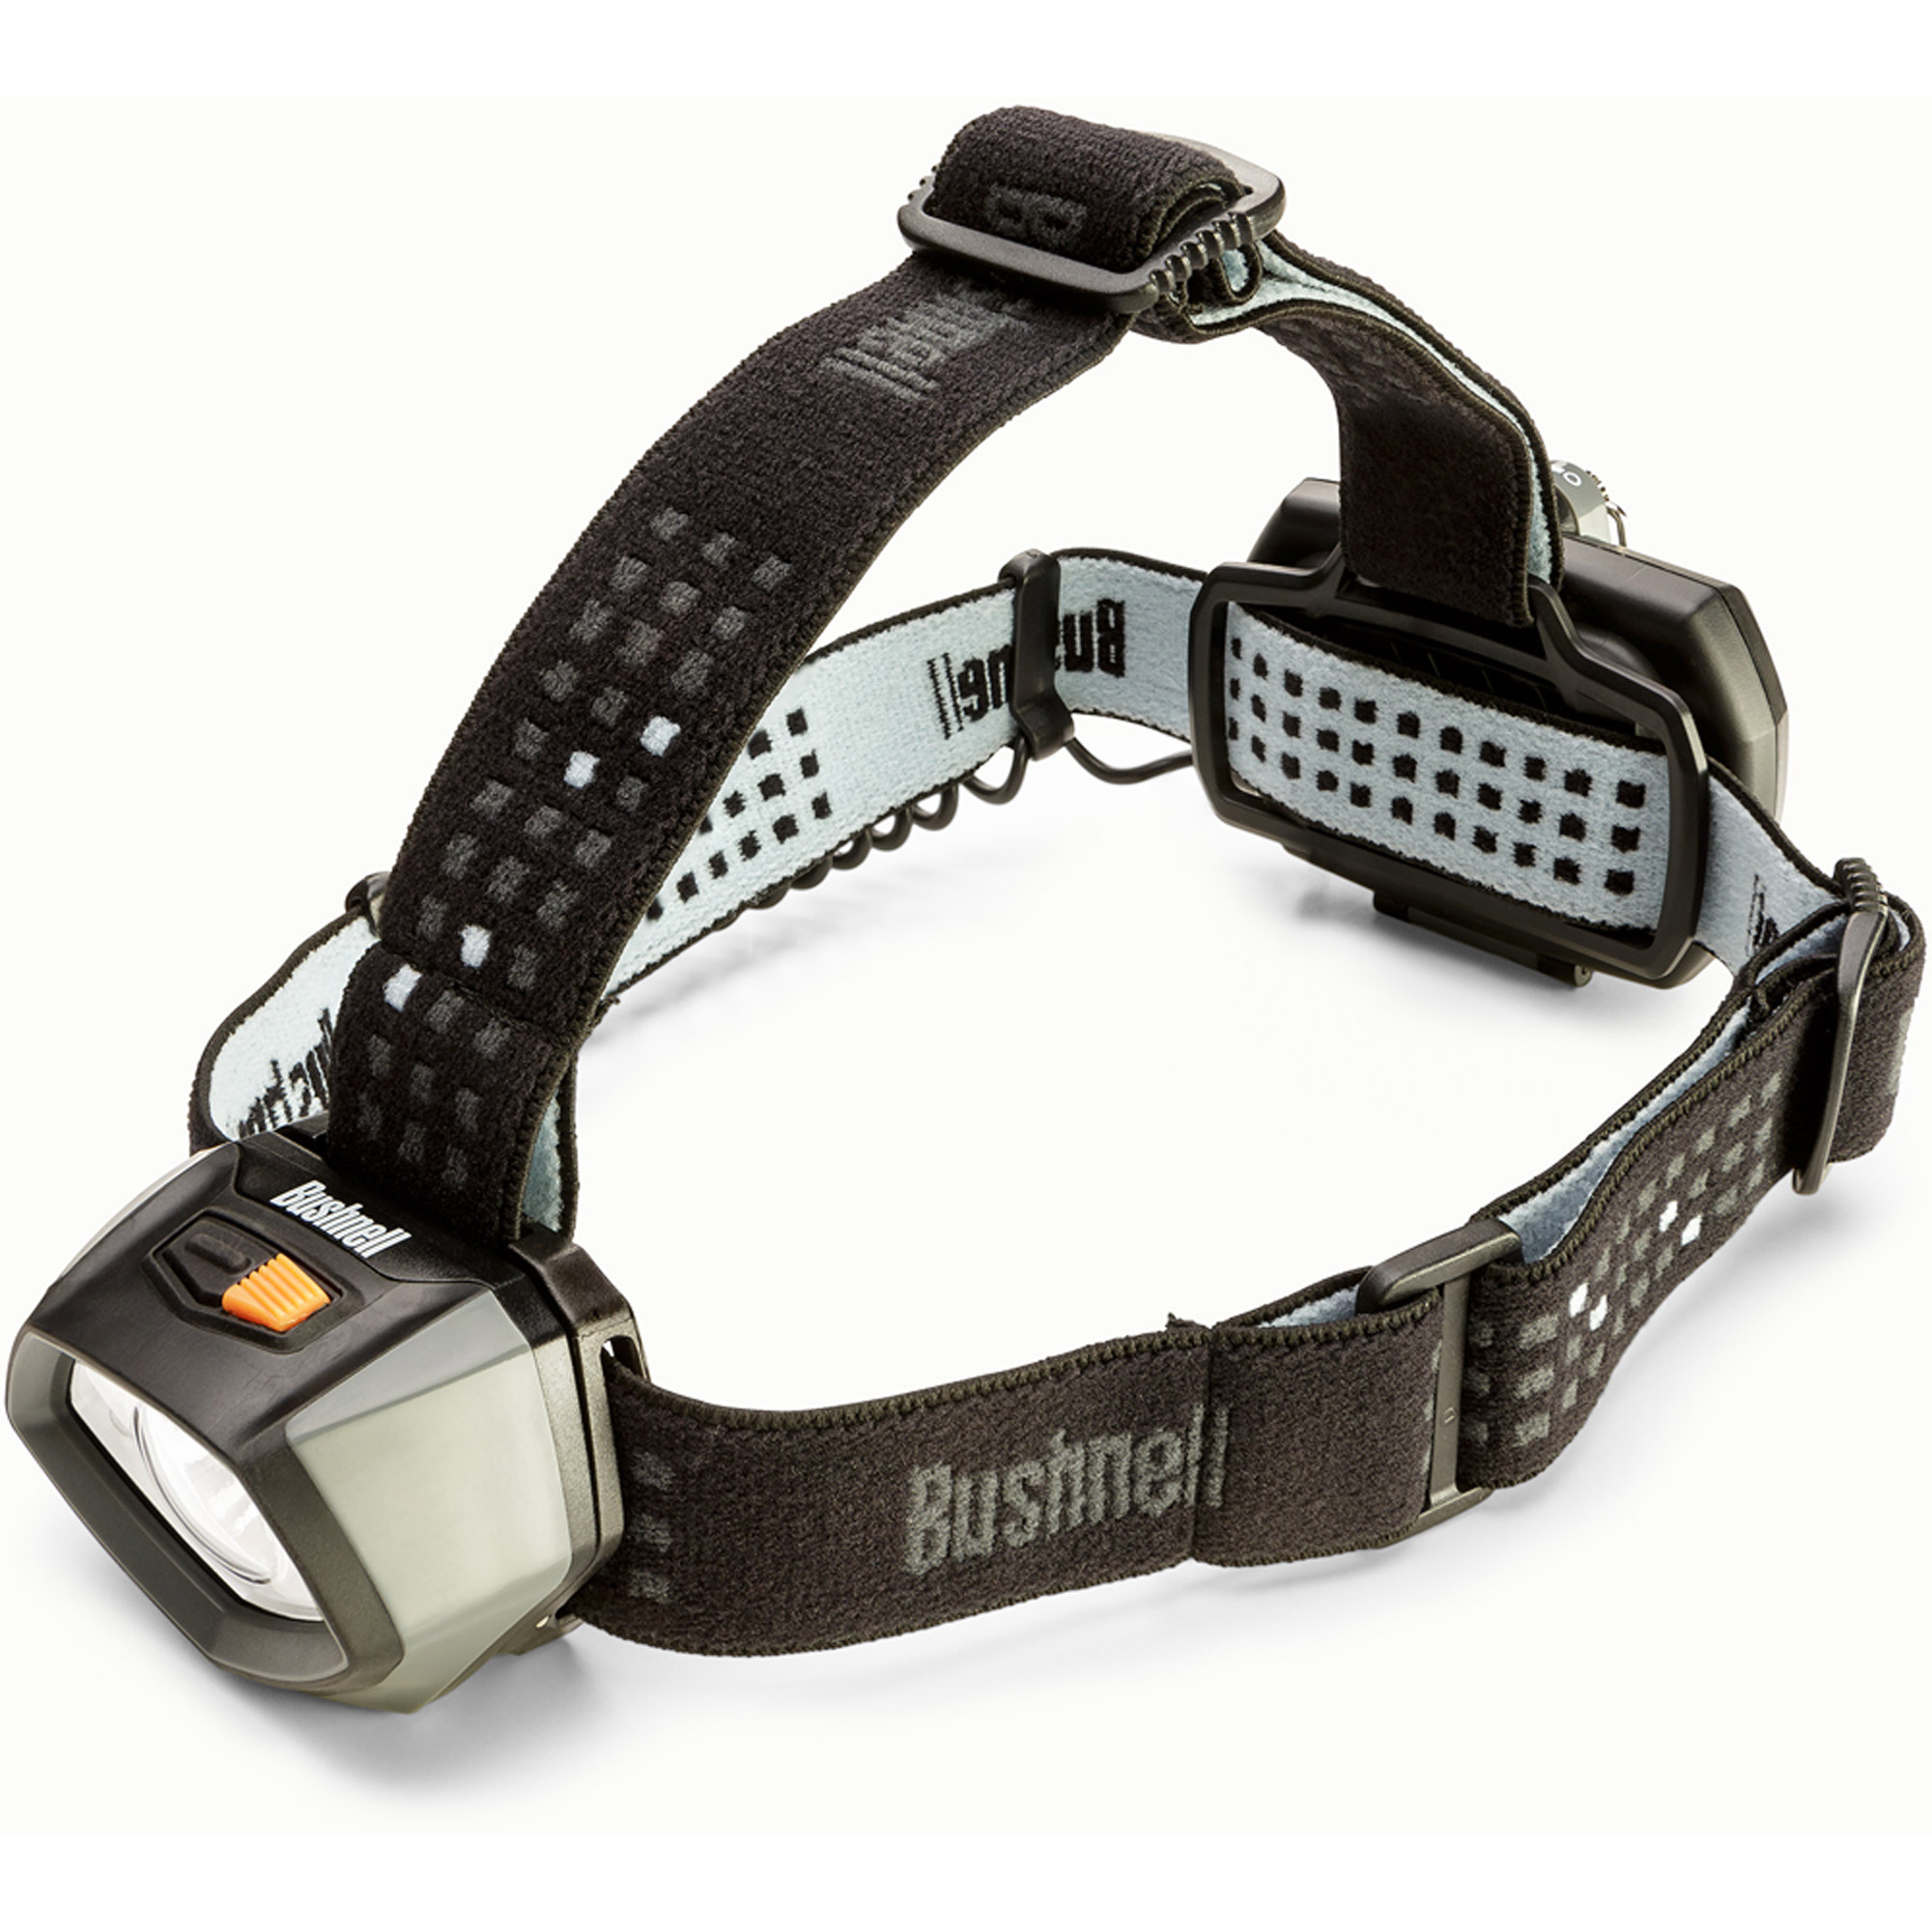 Bushnell TRKR Multi-Color Headlamp, 250 Lumens